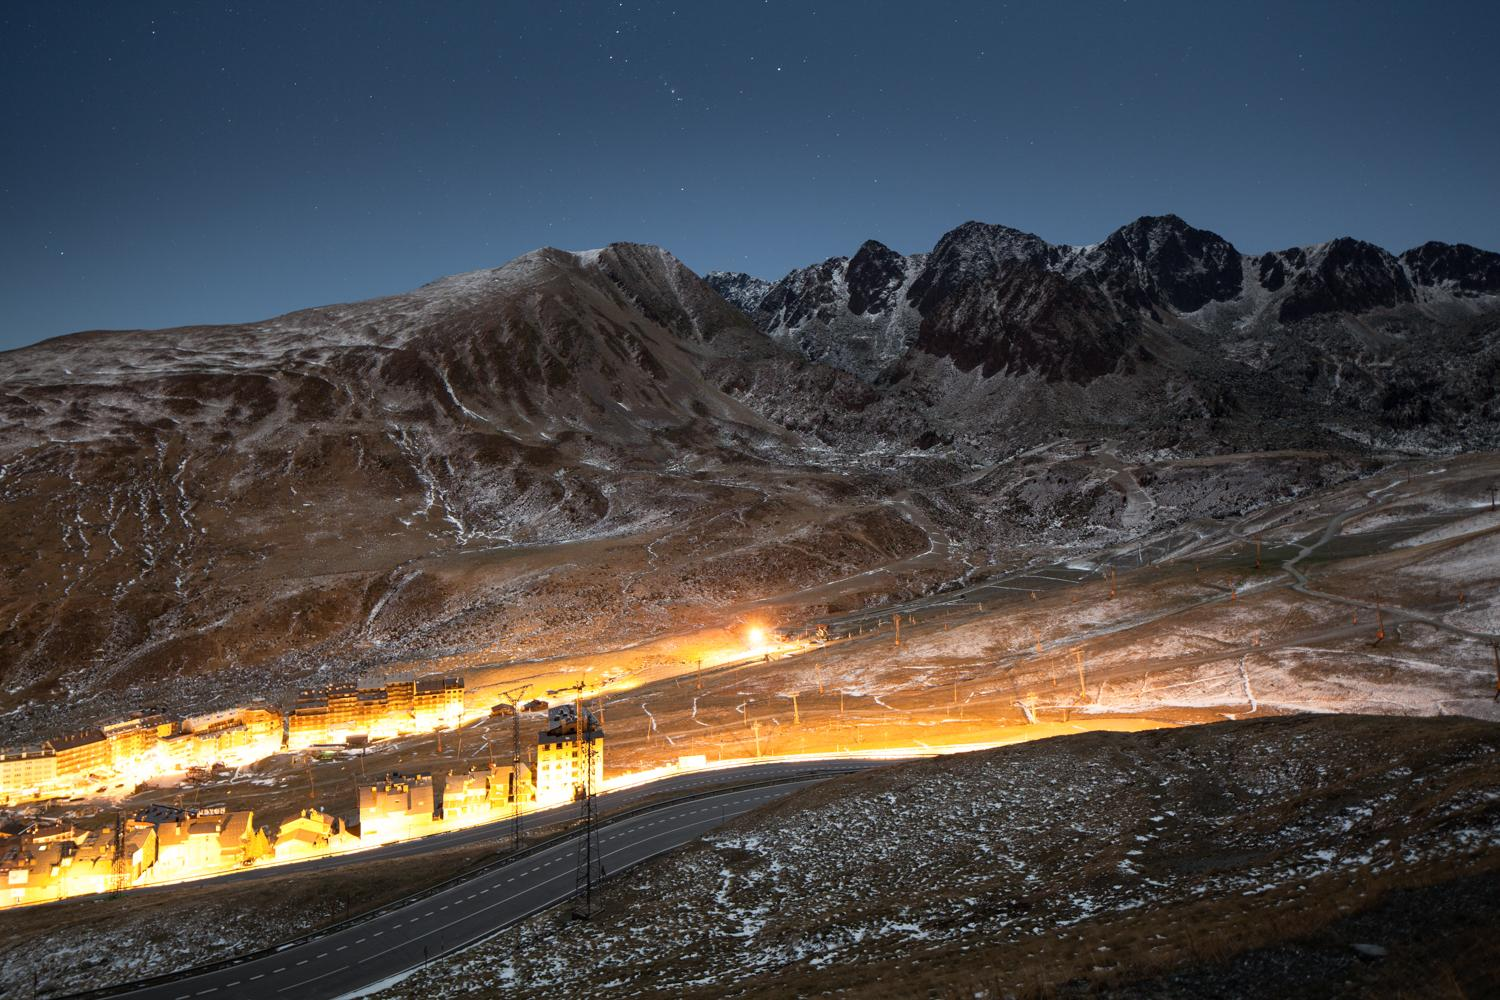 Sources, Incandescences series by Xavier Dumoulin - Night Photography, Landscape